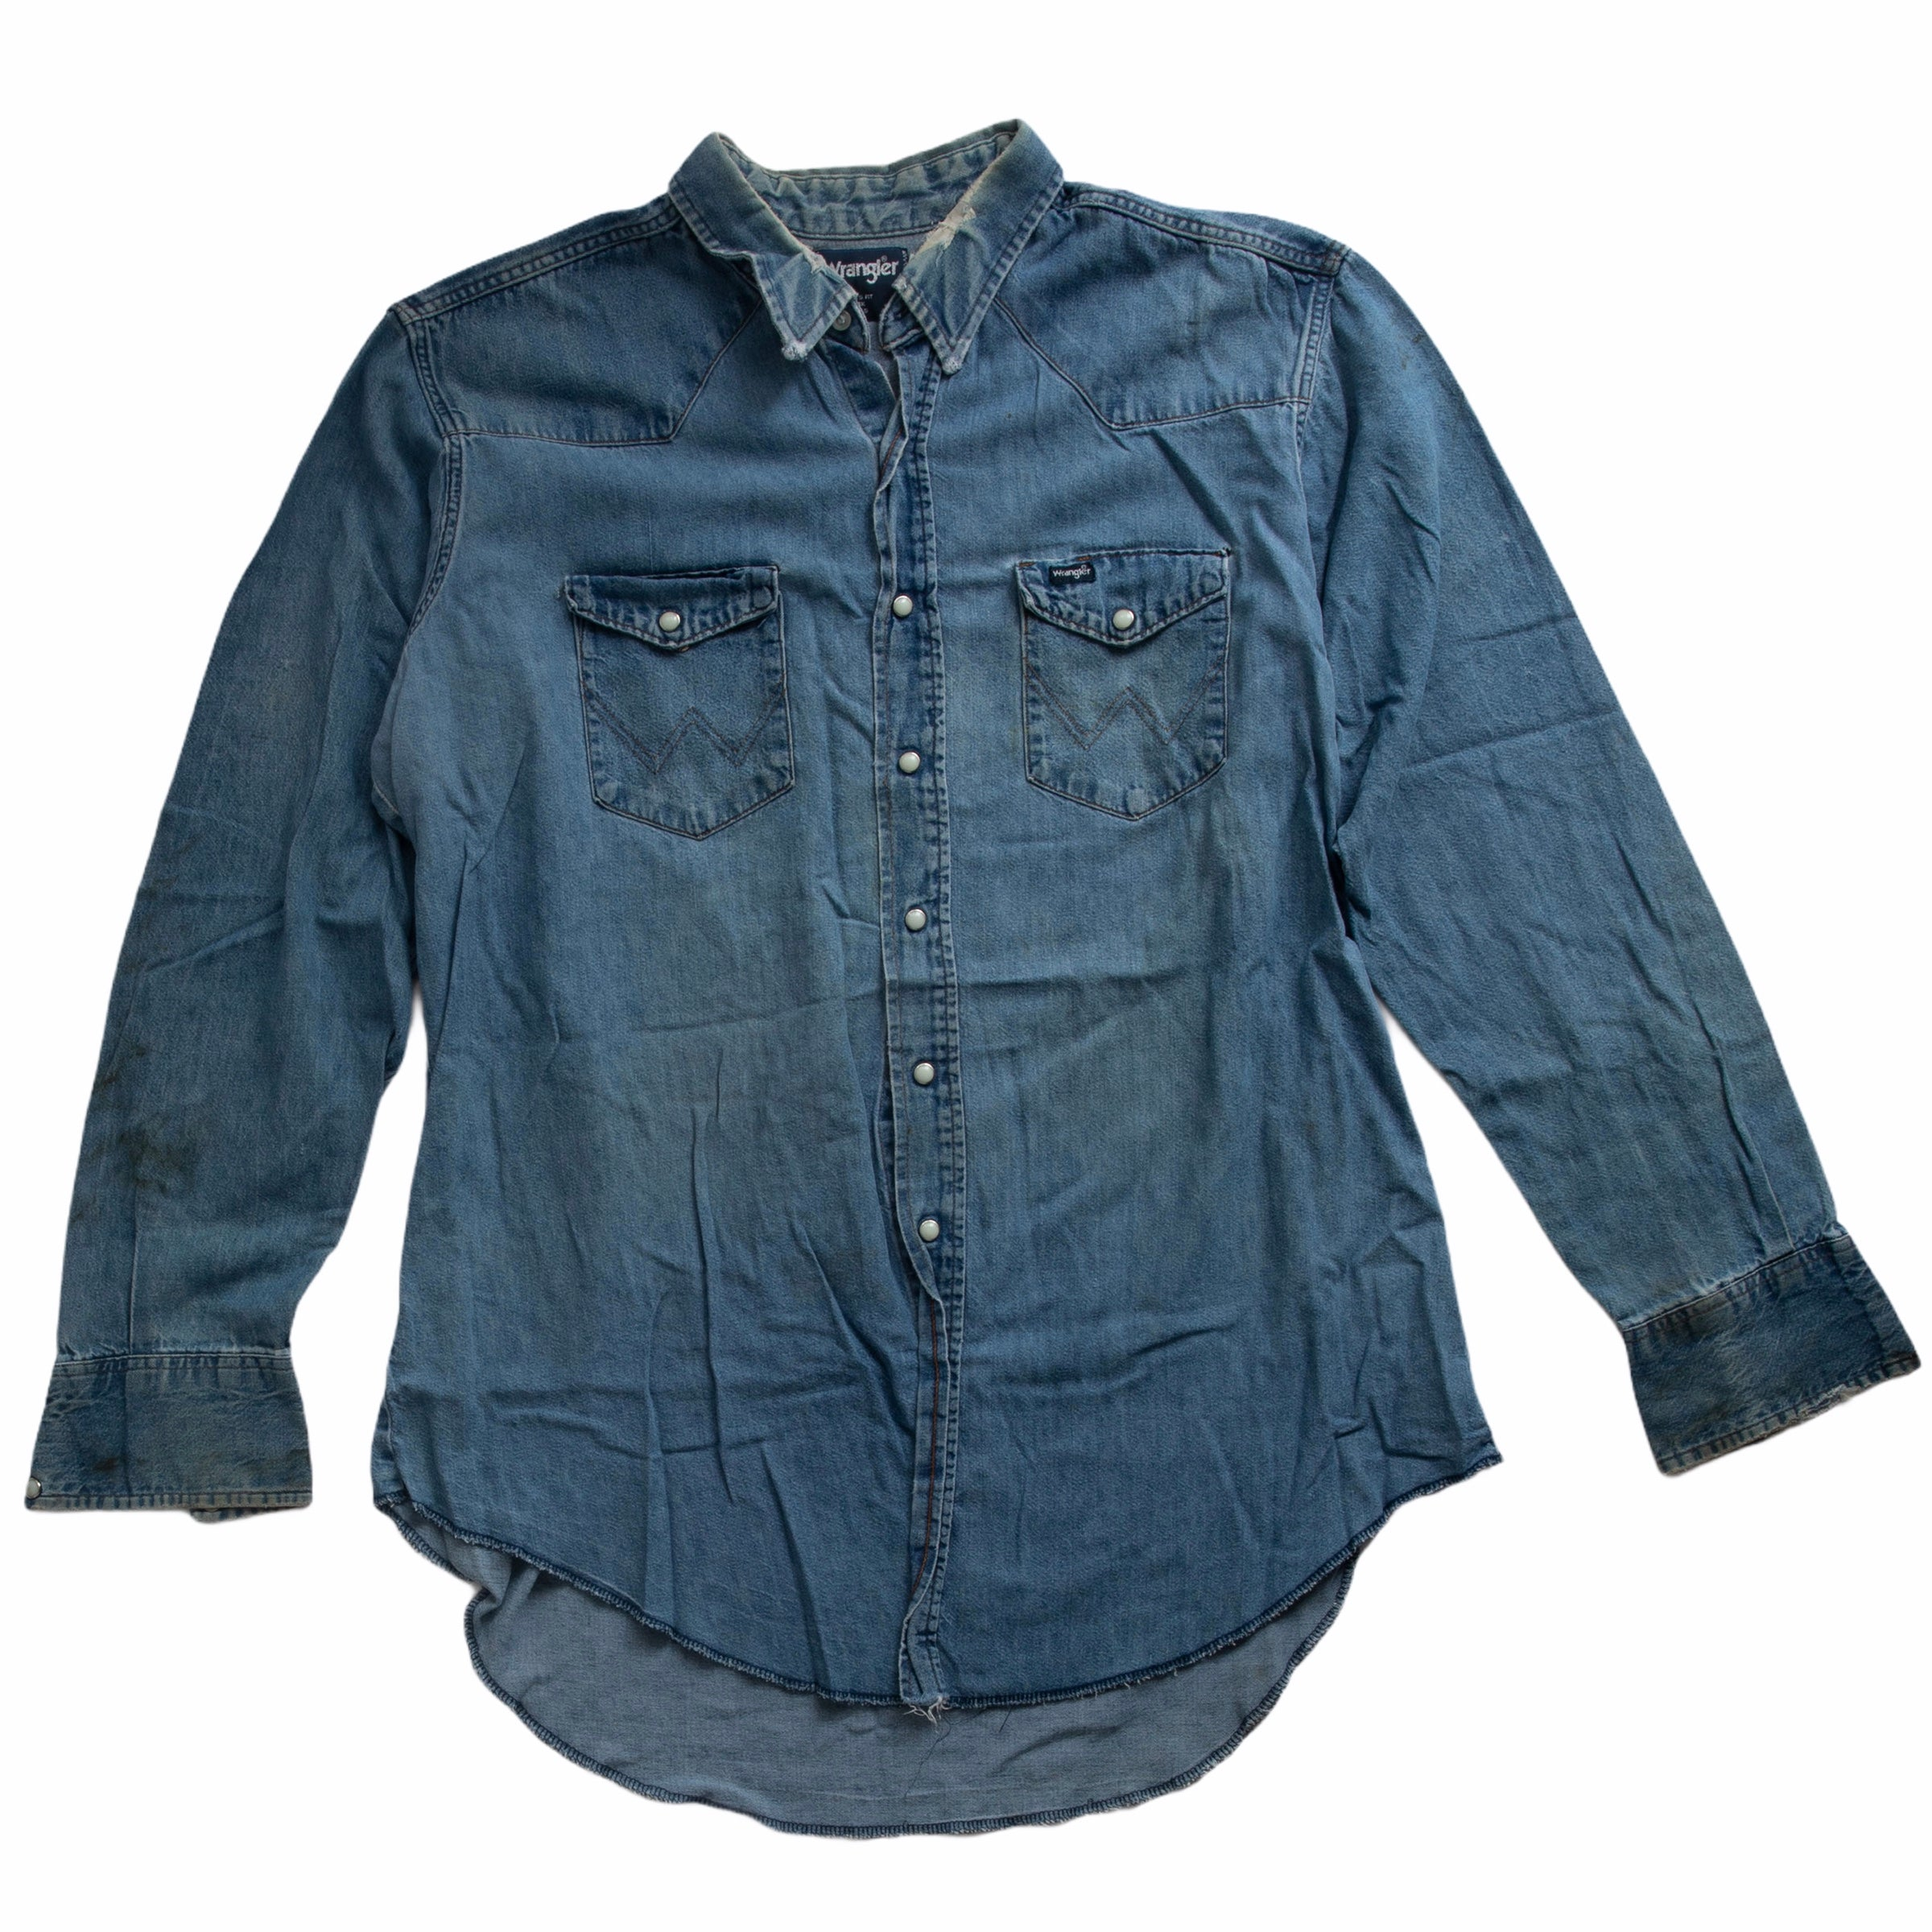 Vintage Wrangler Pearl Snap Denim Shirt 03 - XL / Tall